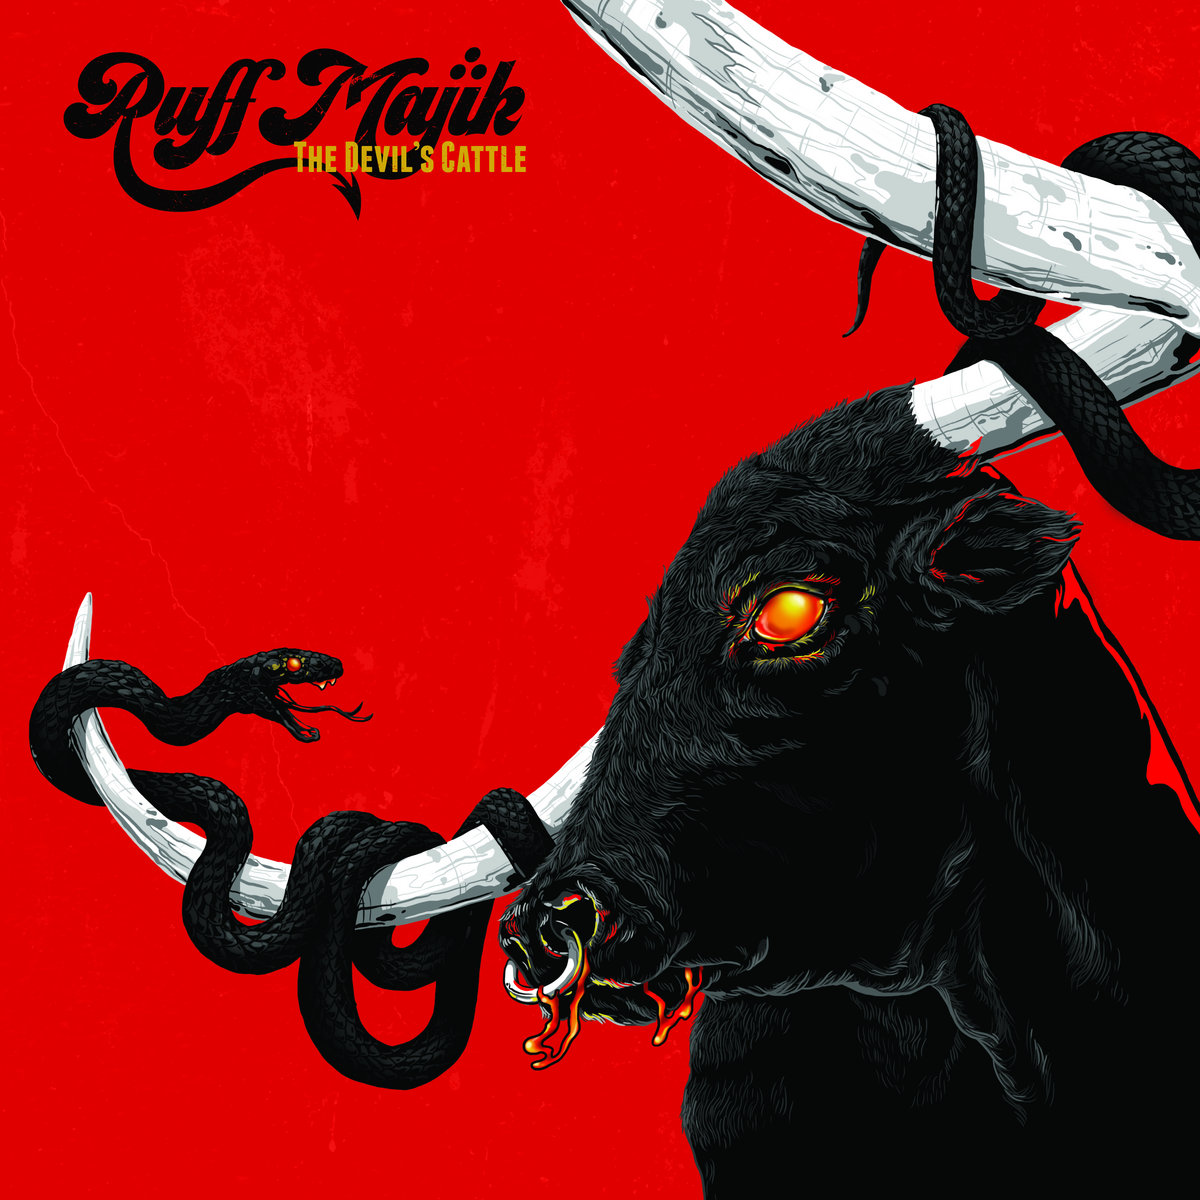 Reseña: RUFF MAJIK.- 'The Devil's Cattle'